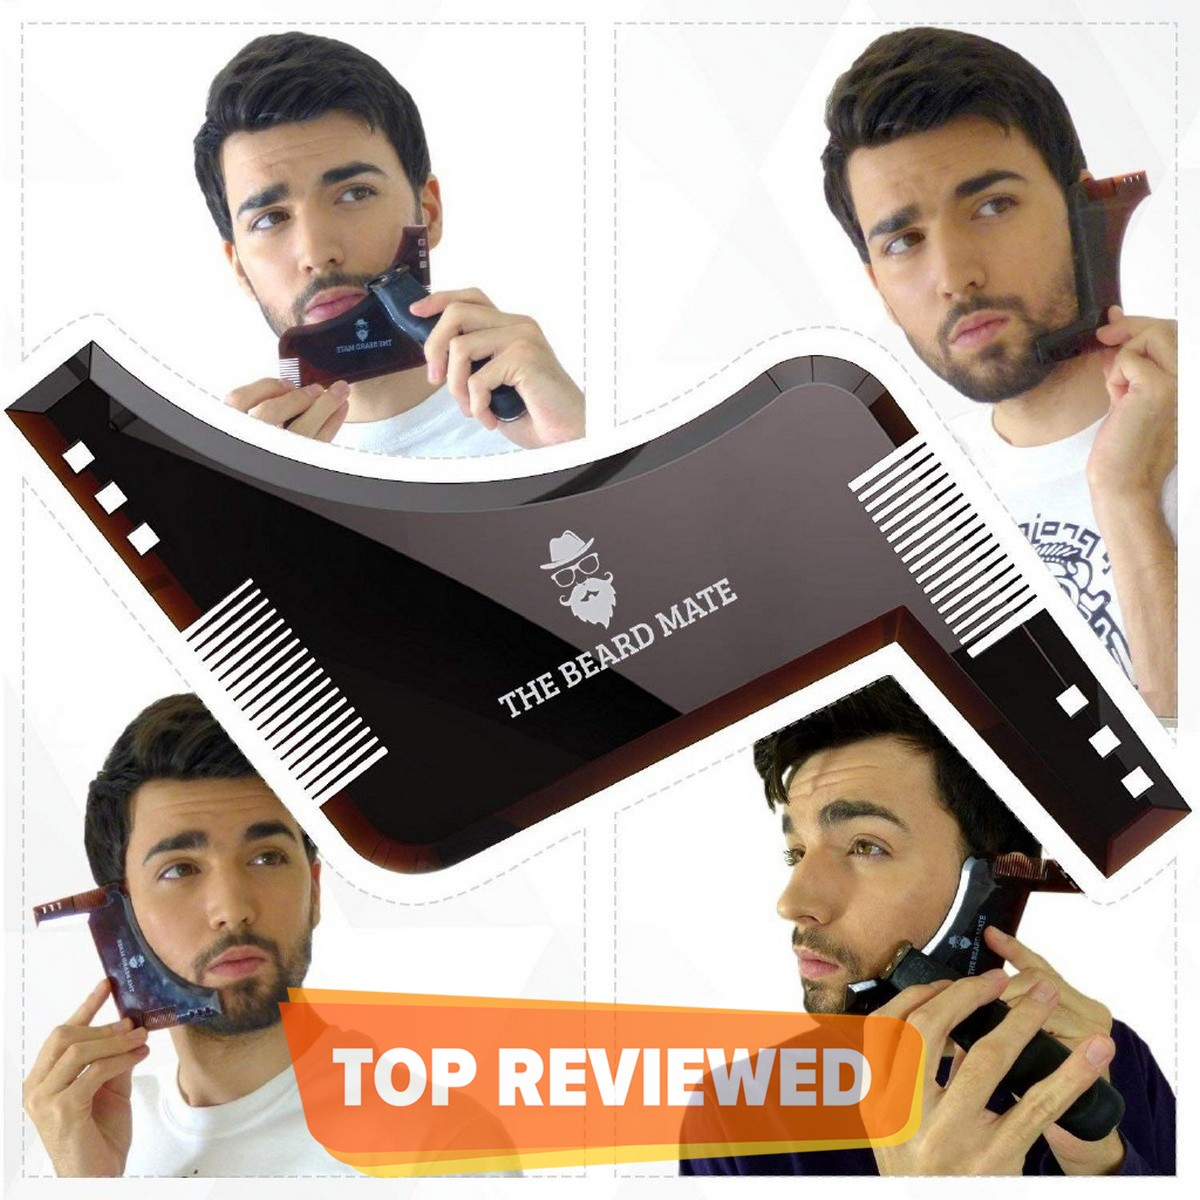 Double Side Beard Shaping Beard Shaper PLUS Comb For Line Up and Men Bread Comb